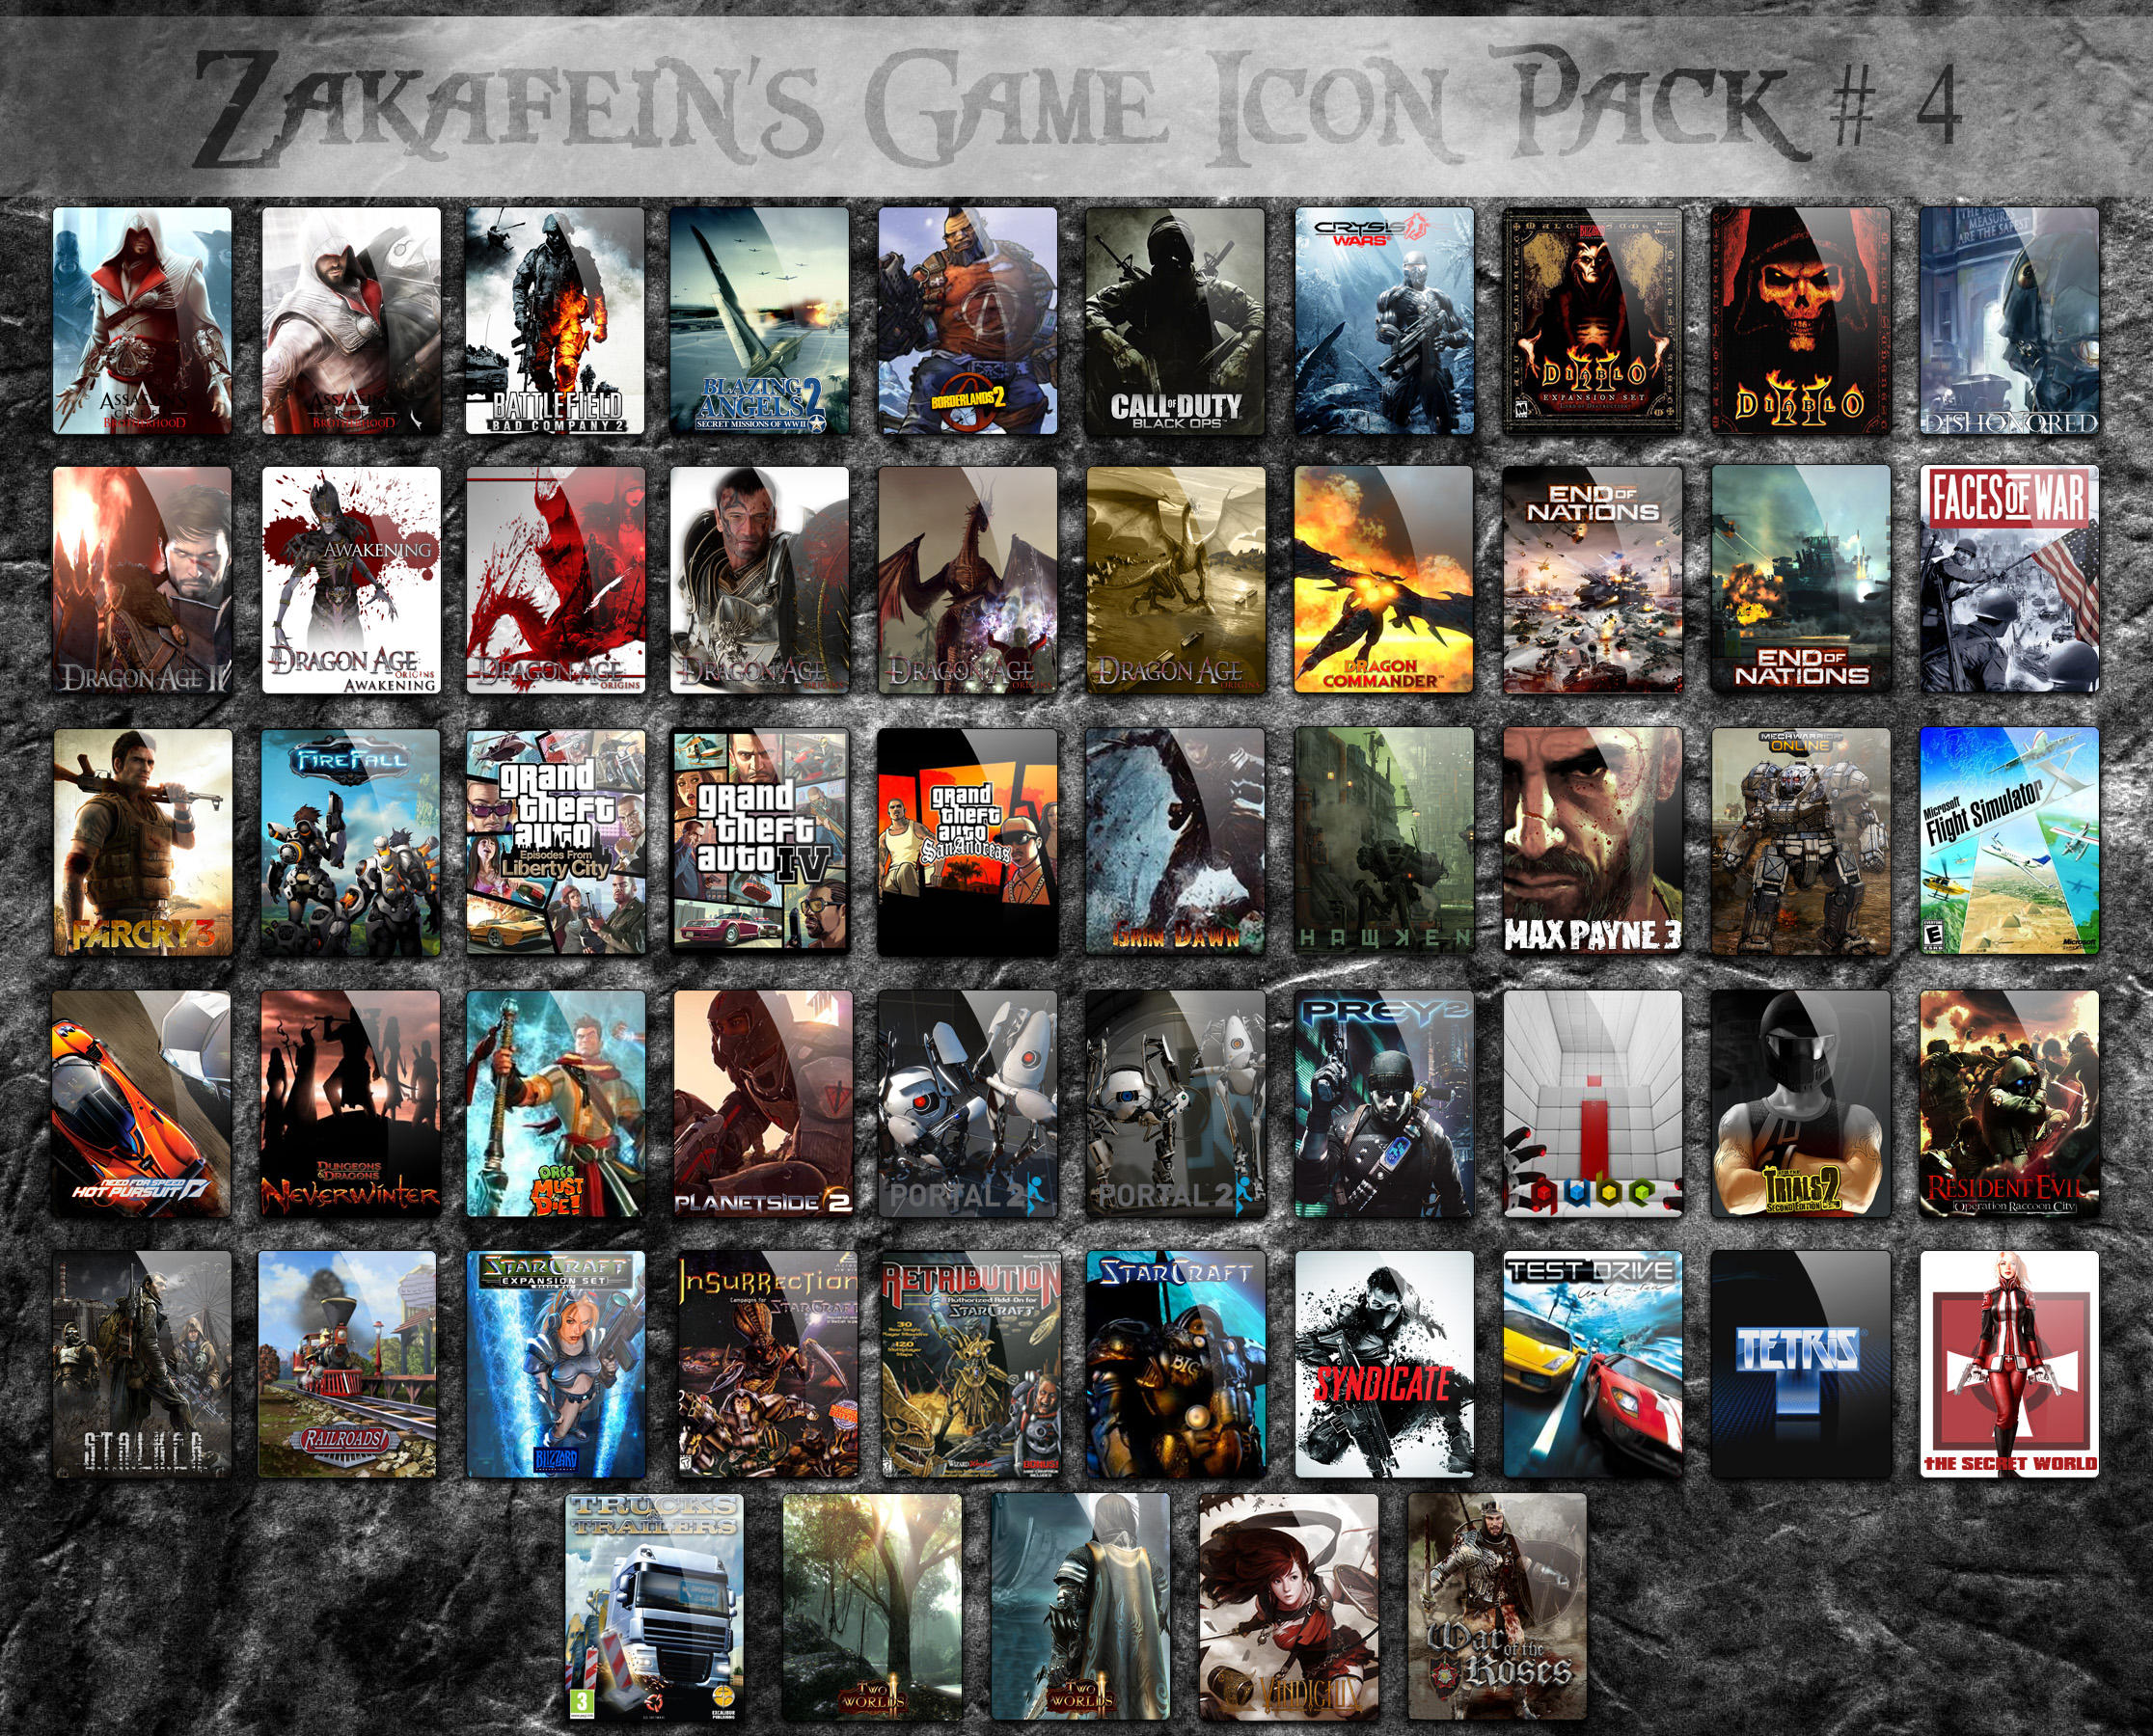 Zakafein's Game Icon Pack 4 by Zakafein